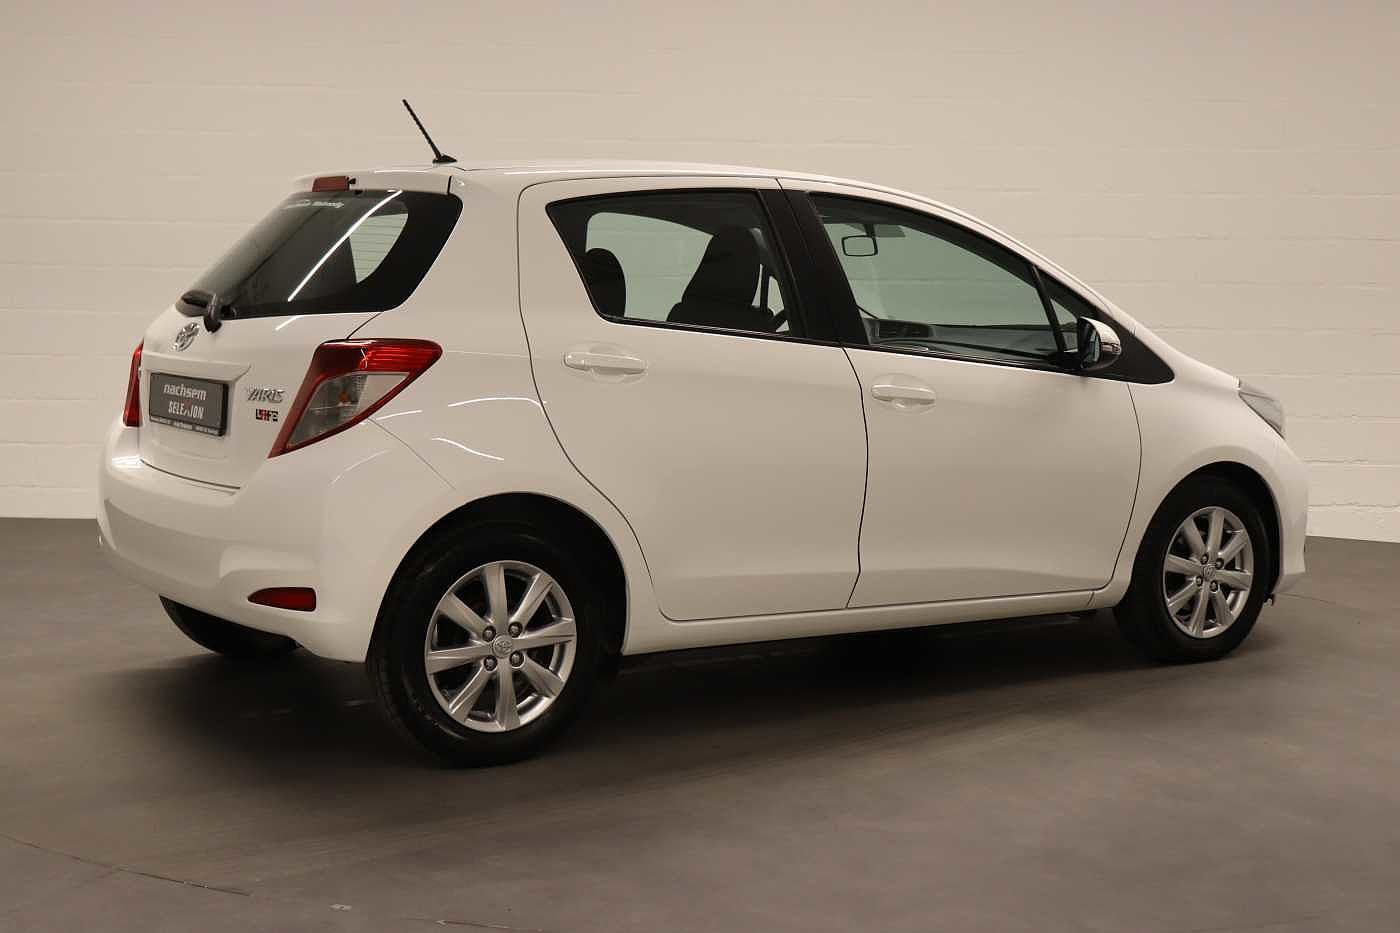 Toyota Yaris 1.4 D-4D 6MT - photo 8